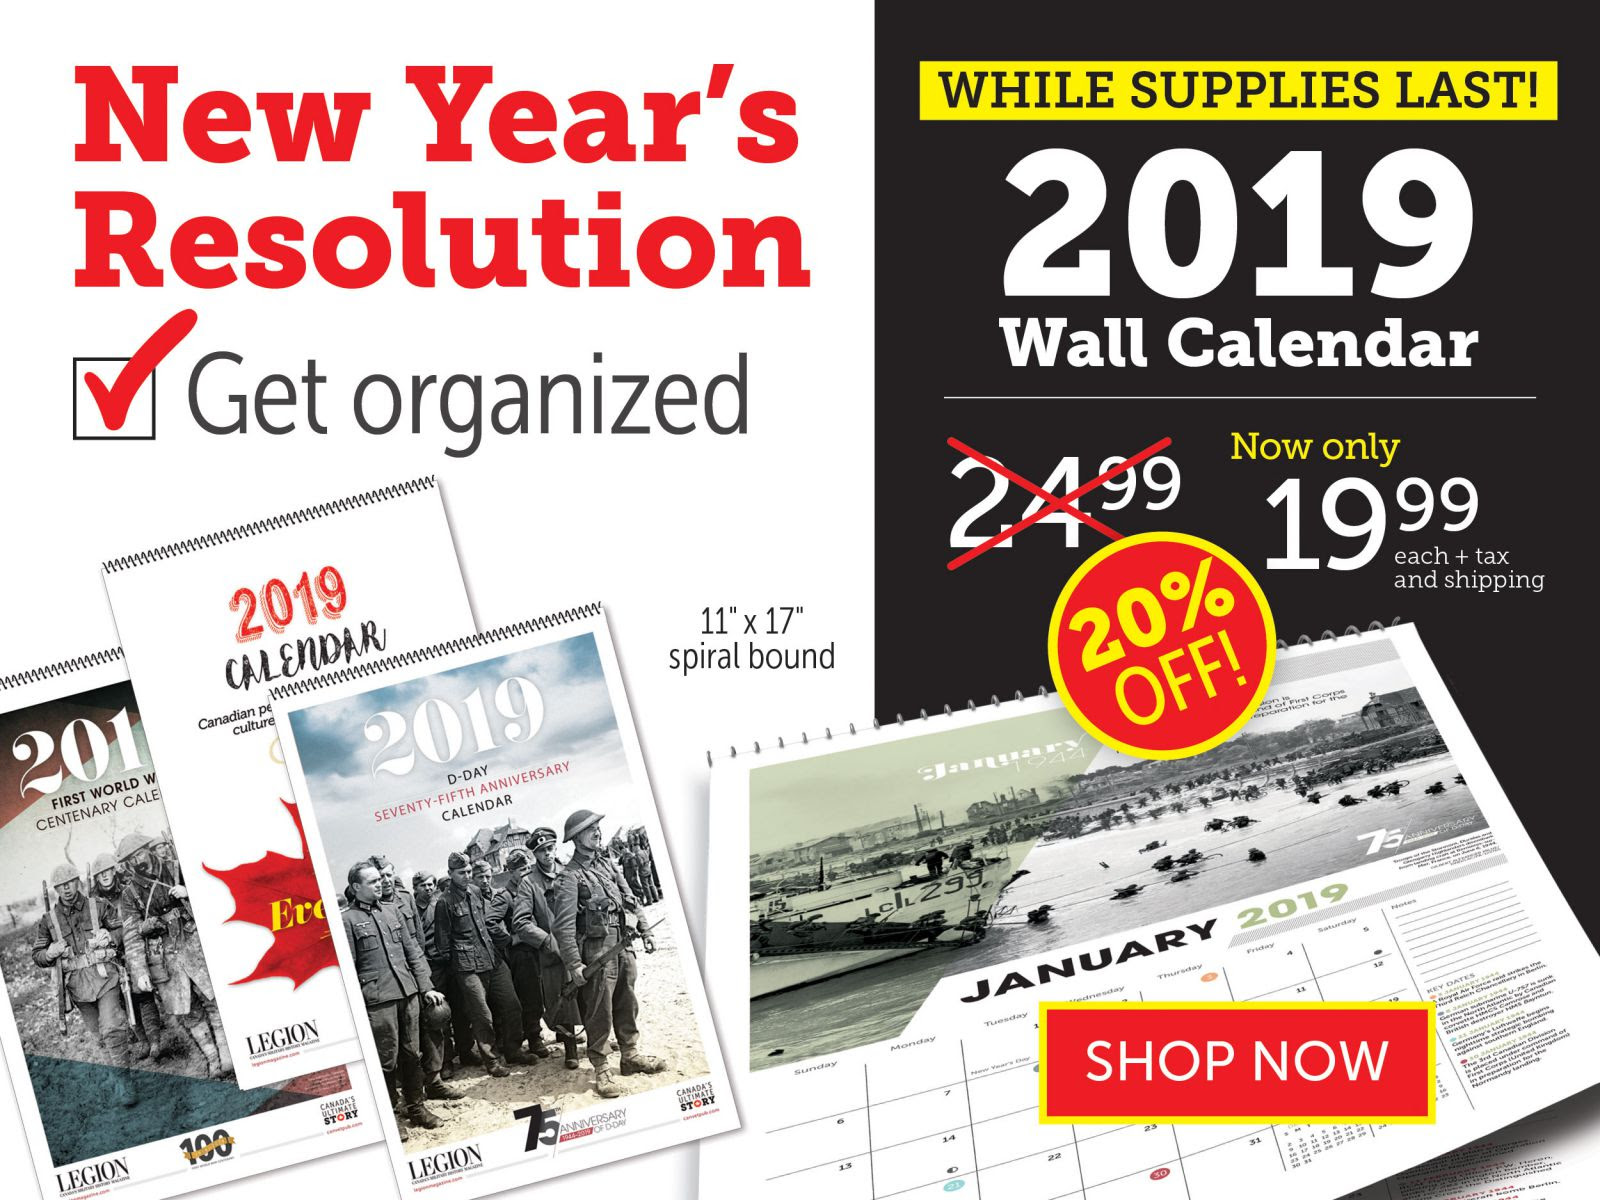 2019 Wall Calendars now 20% OFF!